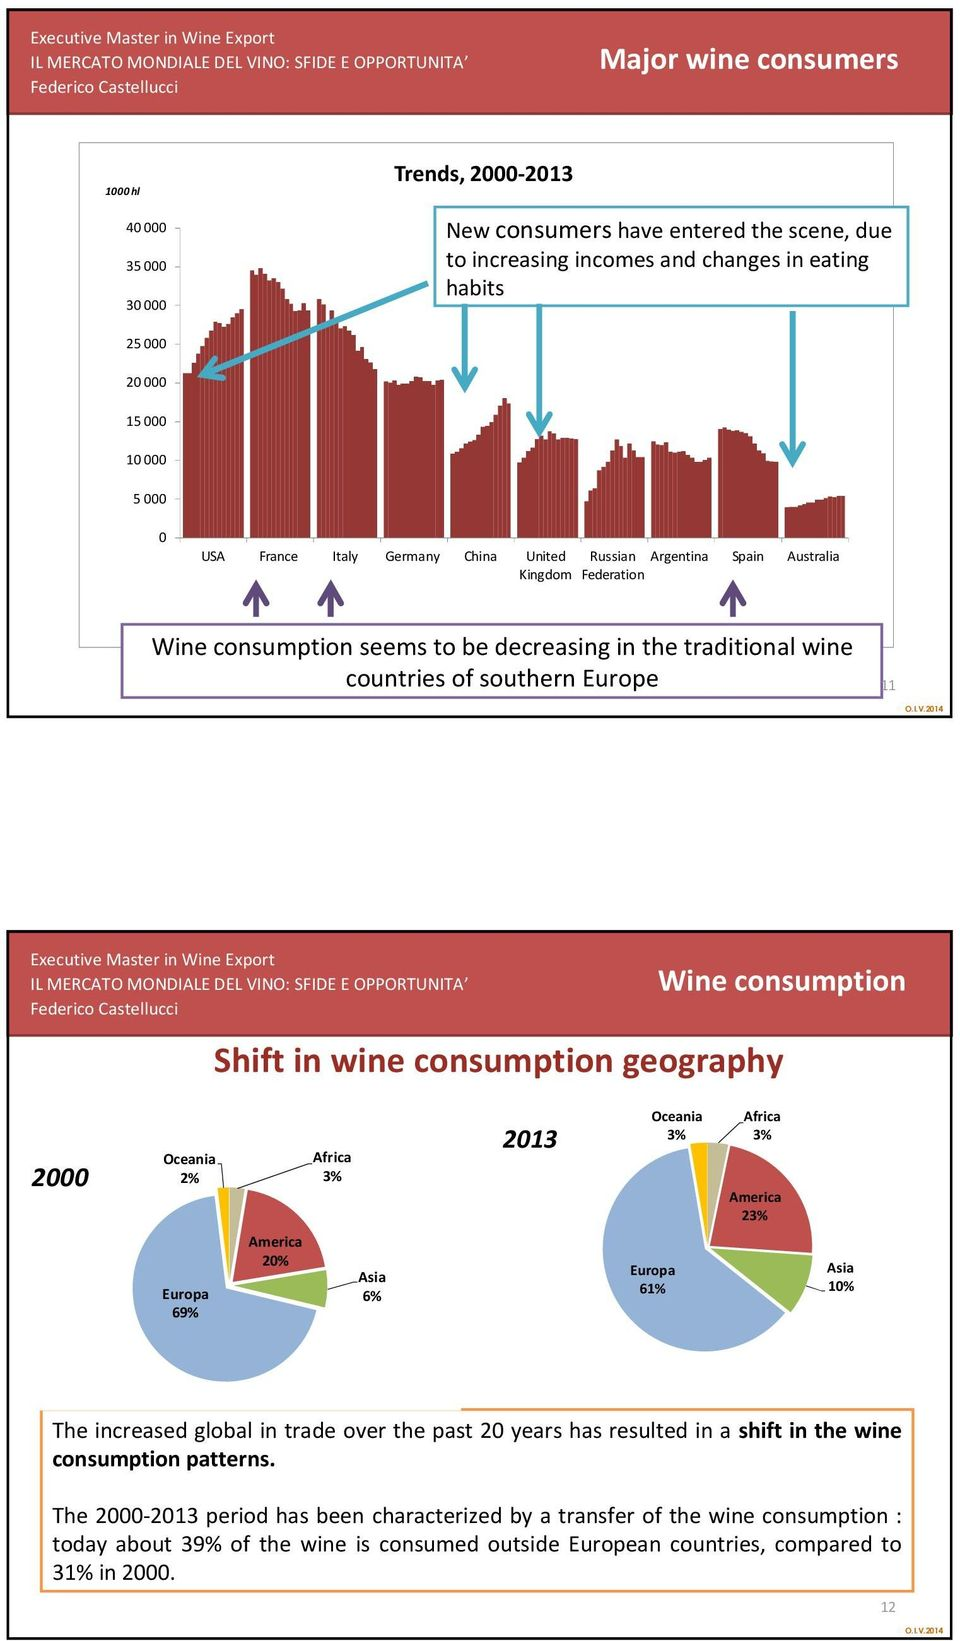 Argentina Spain Kingdom Federation Australia Wineconsumption seems to be decreasing in the traditional wine countries of southern Europe 11 Wine consumption Shift in wine consumption geography